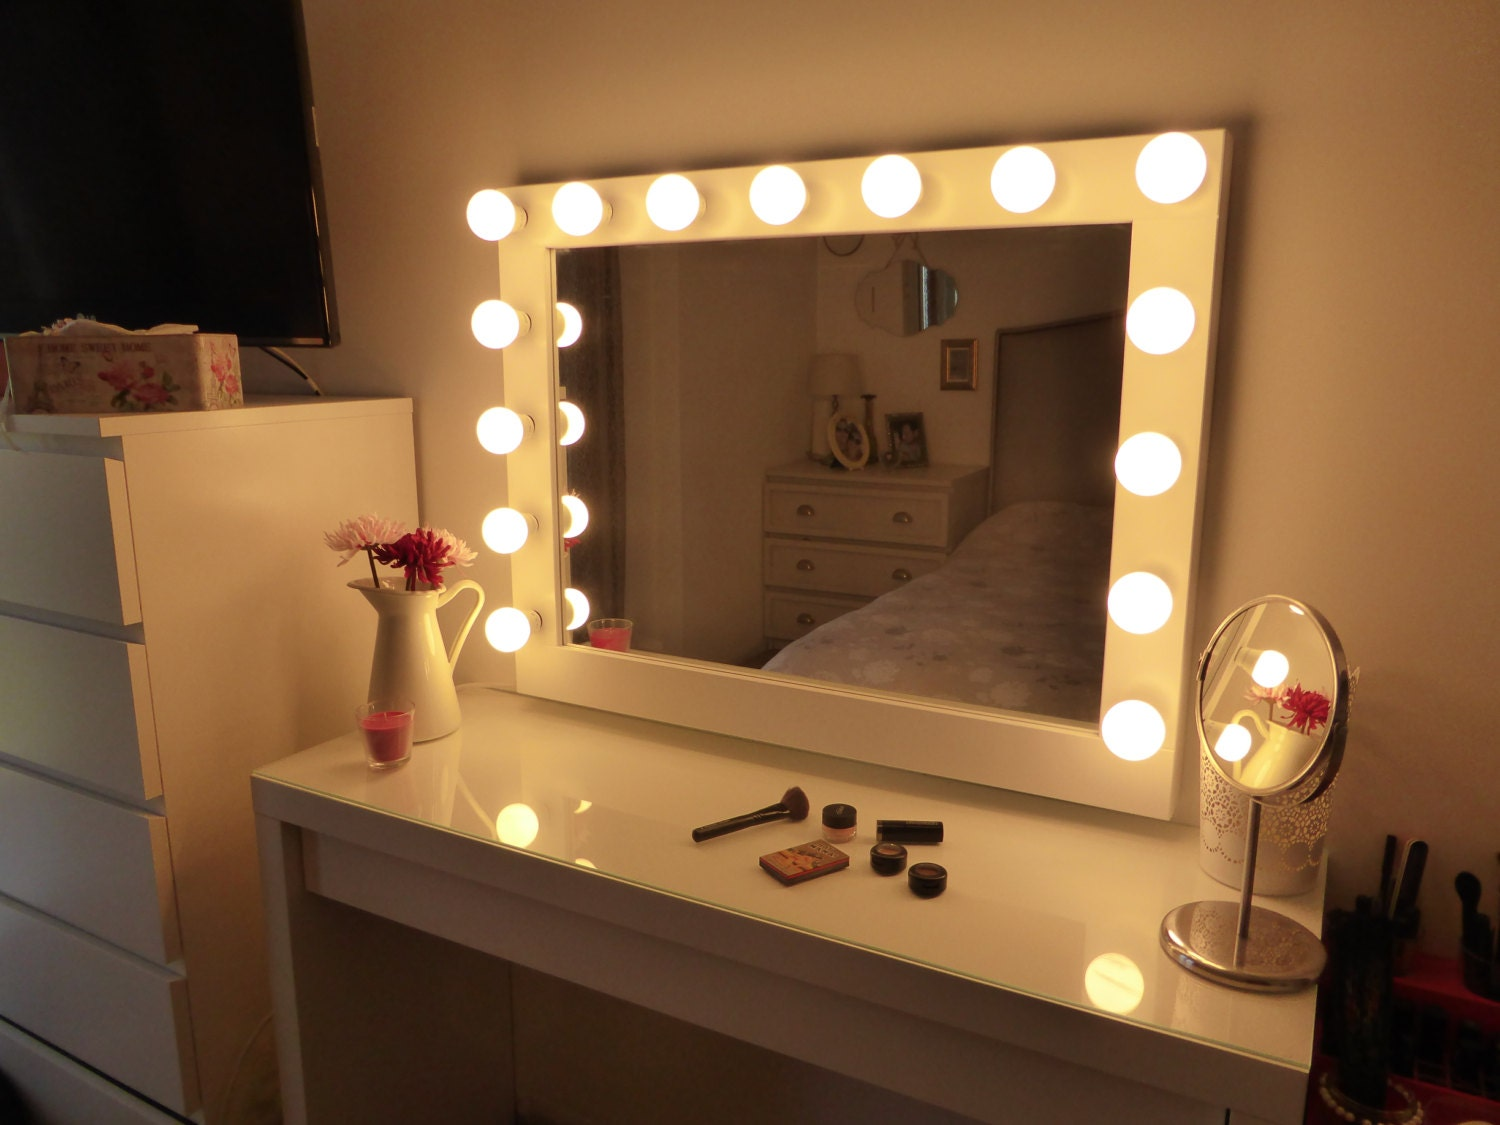 Hollywood lighted vanity mirror large makeup mirror with for Espejo de tocador con luces